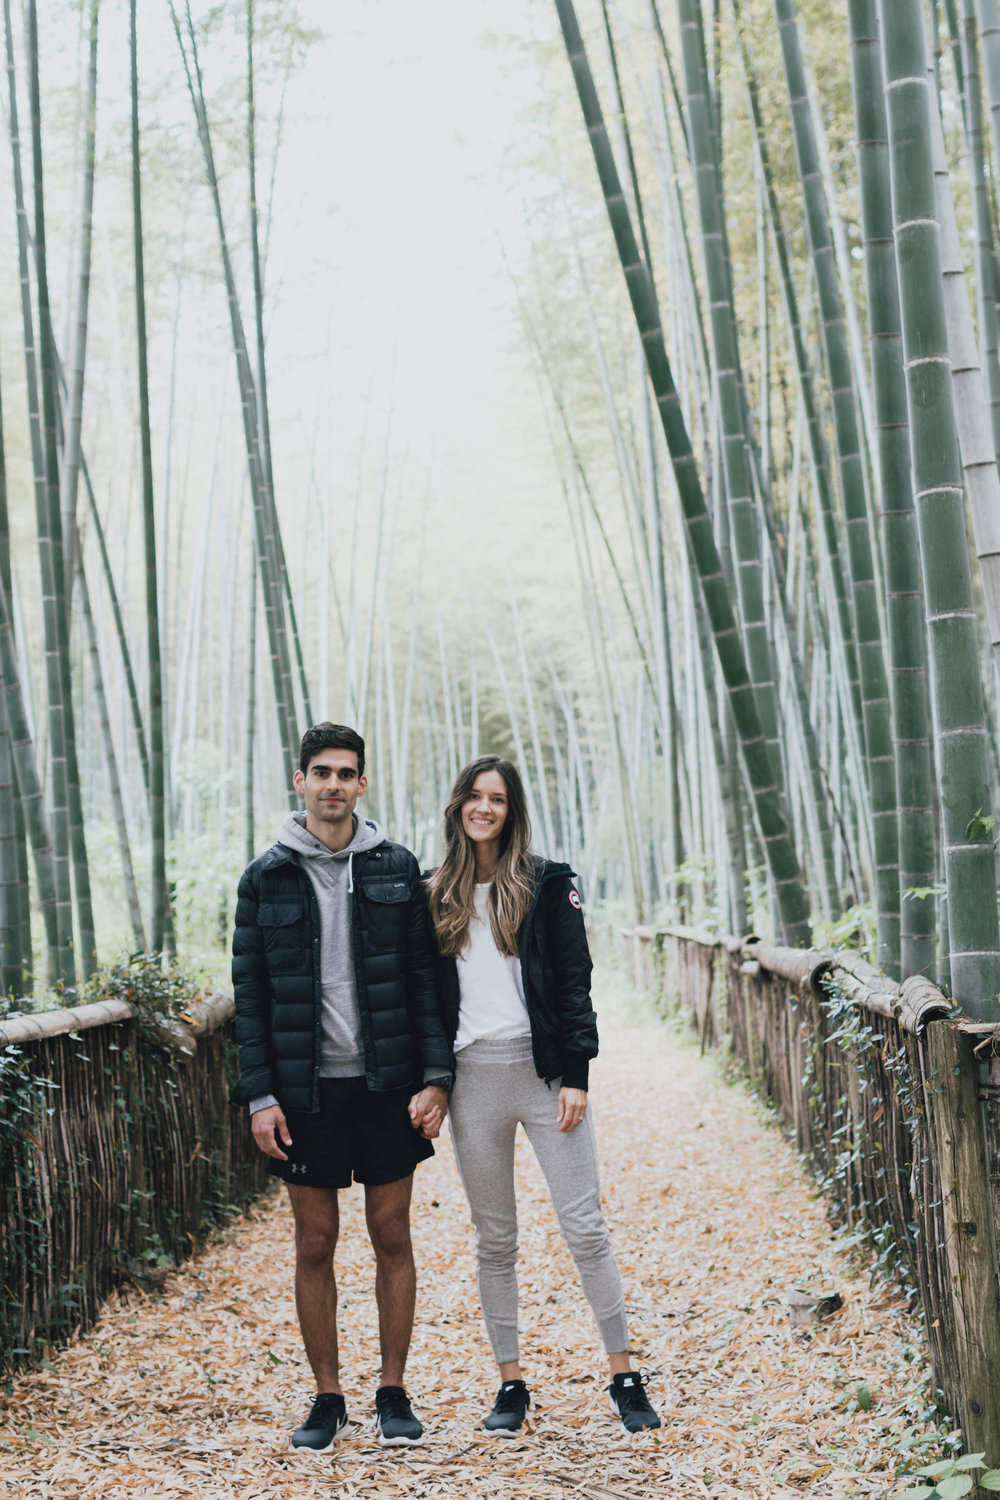 iwakuni-bamboo-forest-japan-photo-by-samantha-look.jpg